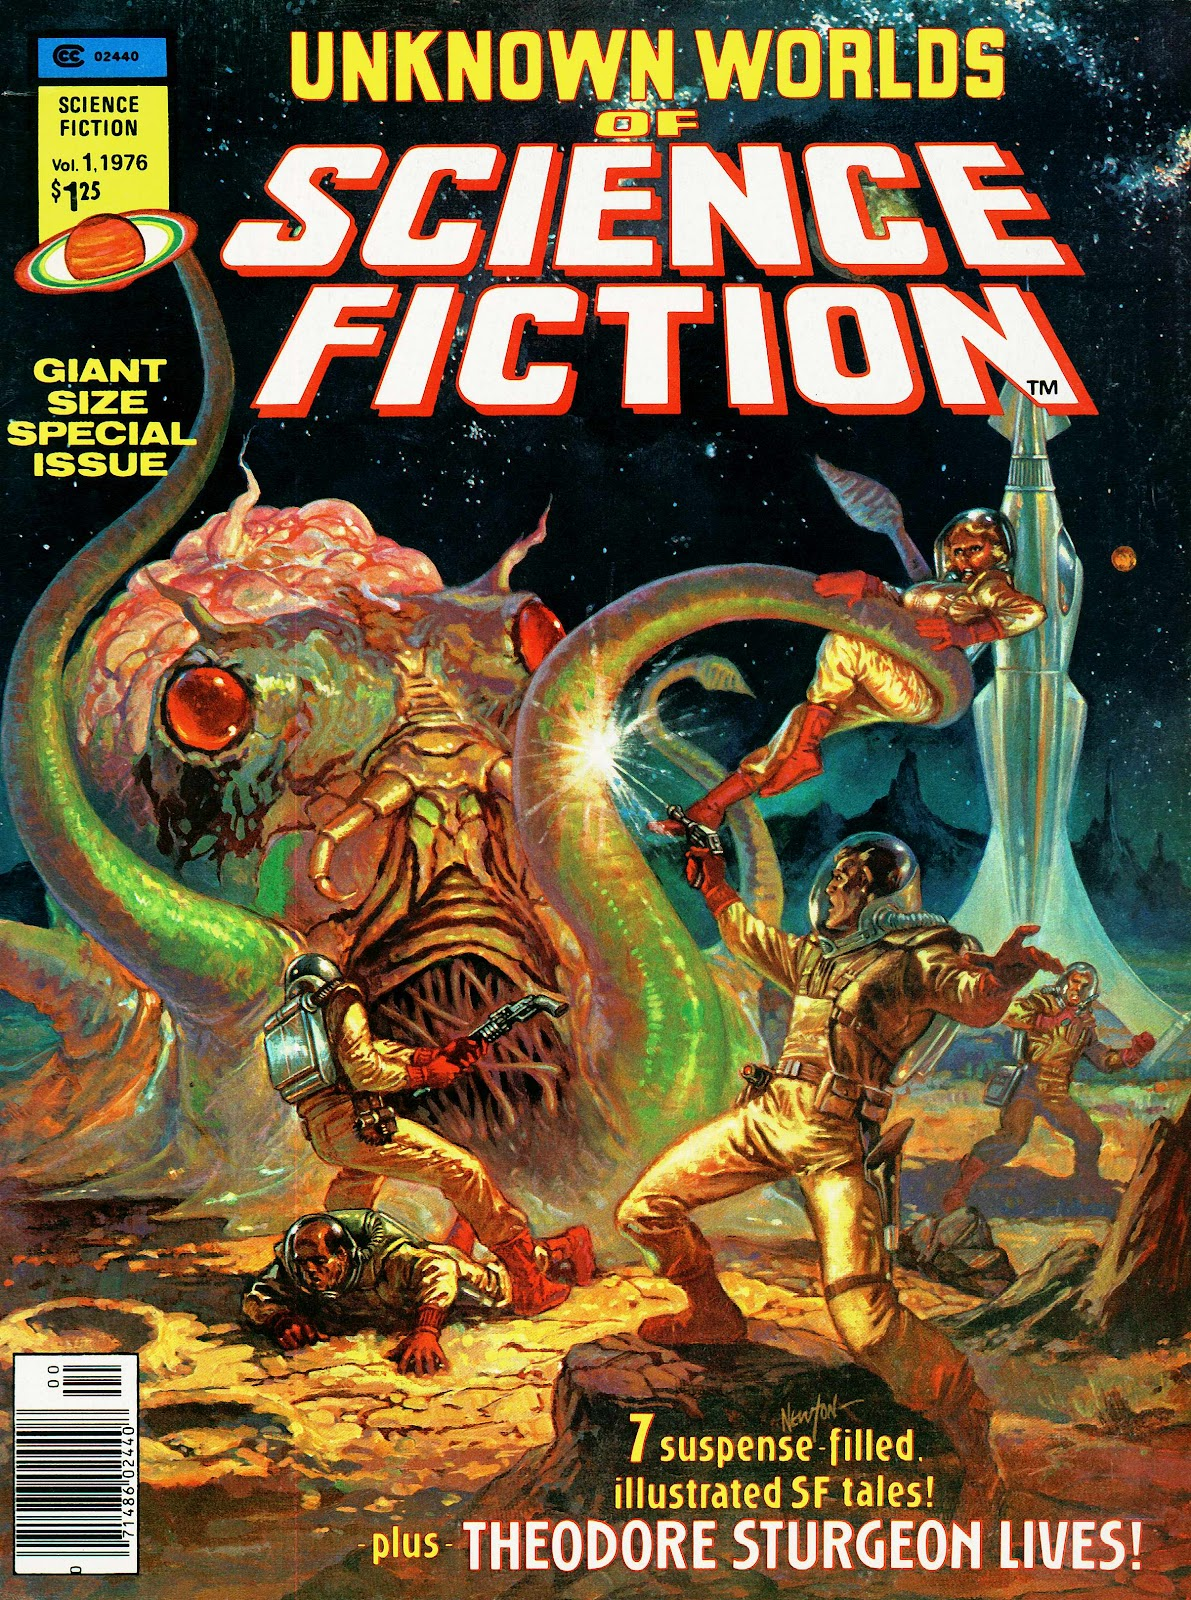 Unknown Worlds of Science Fiction Giant Size Special issue Full - Page 1